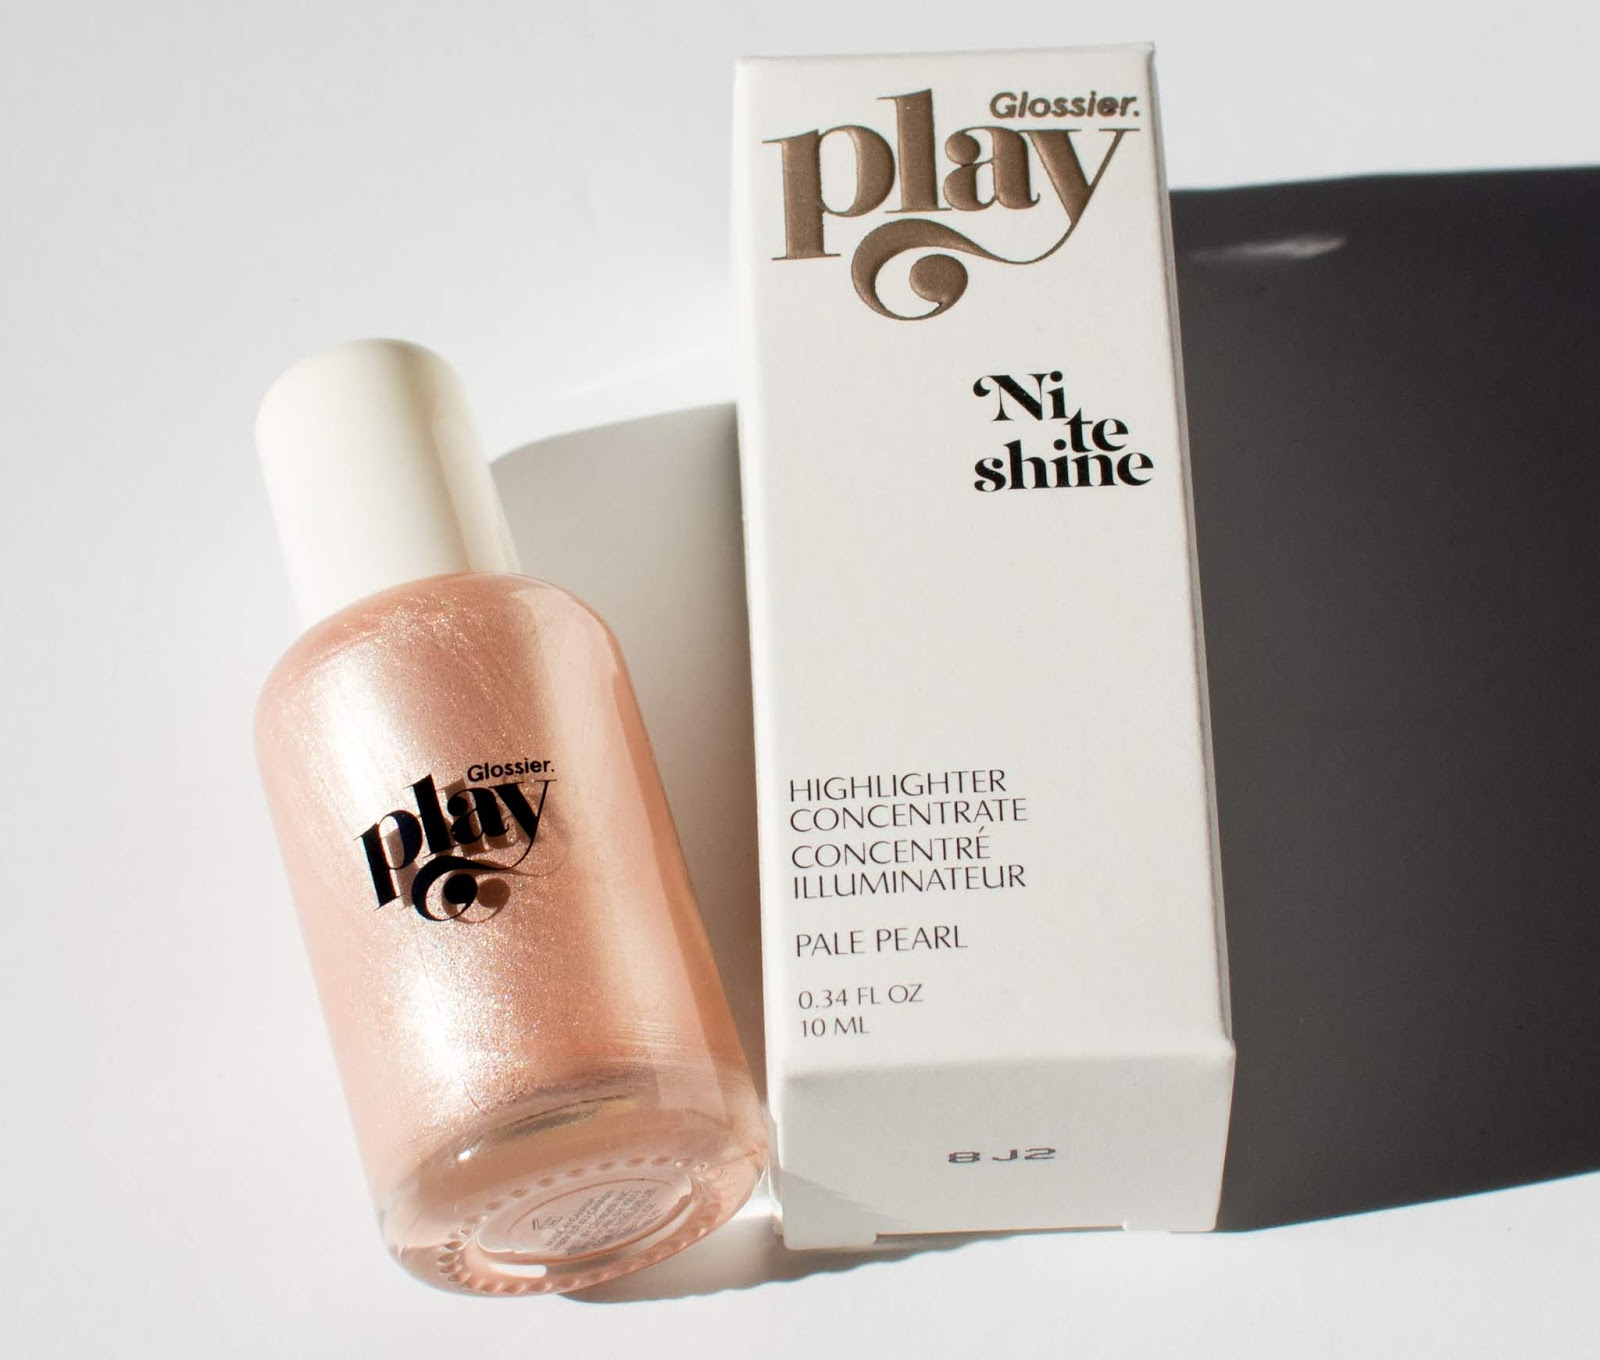 Glossier Play Niteshine Highlighter Concentrate in Pale Pearl